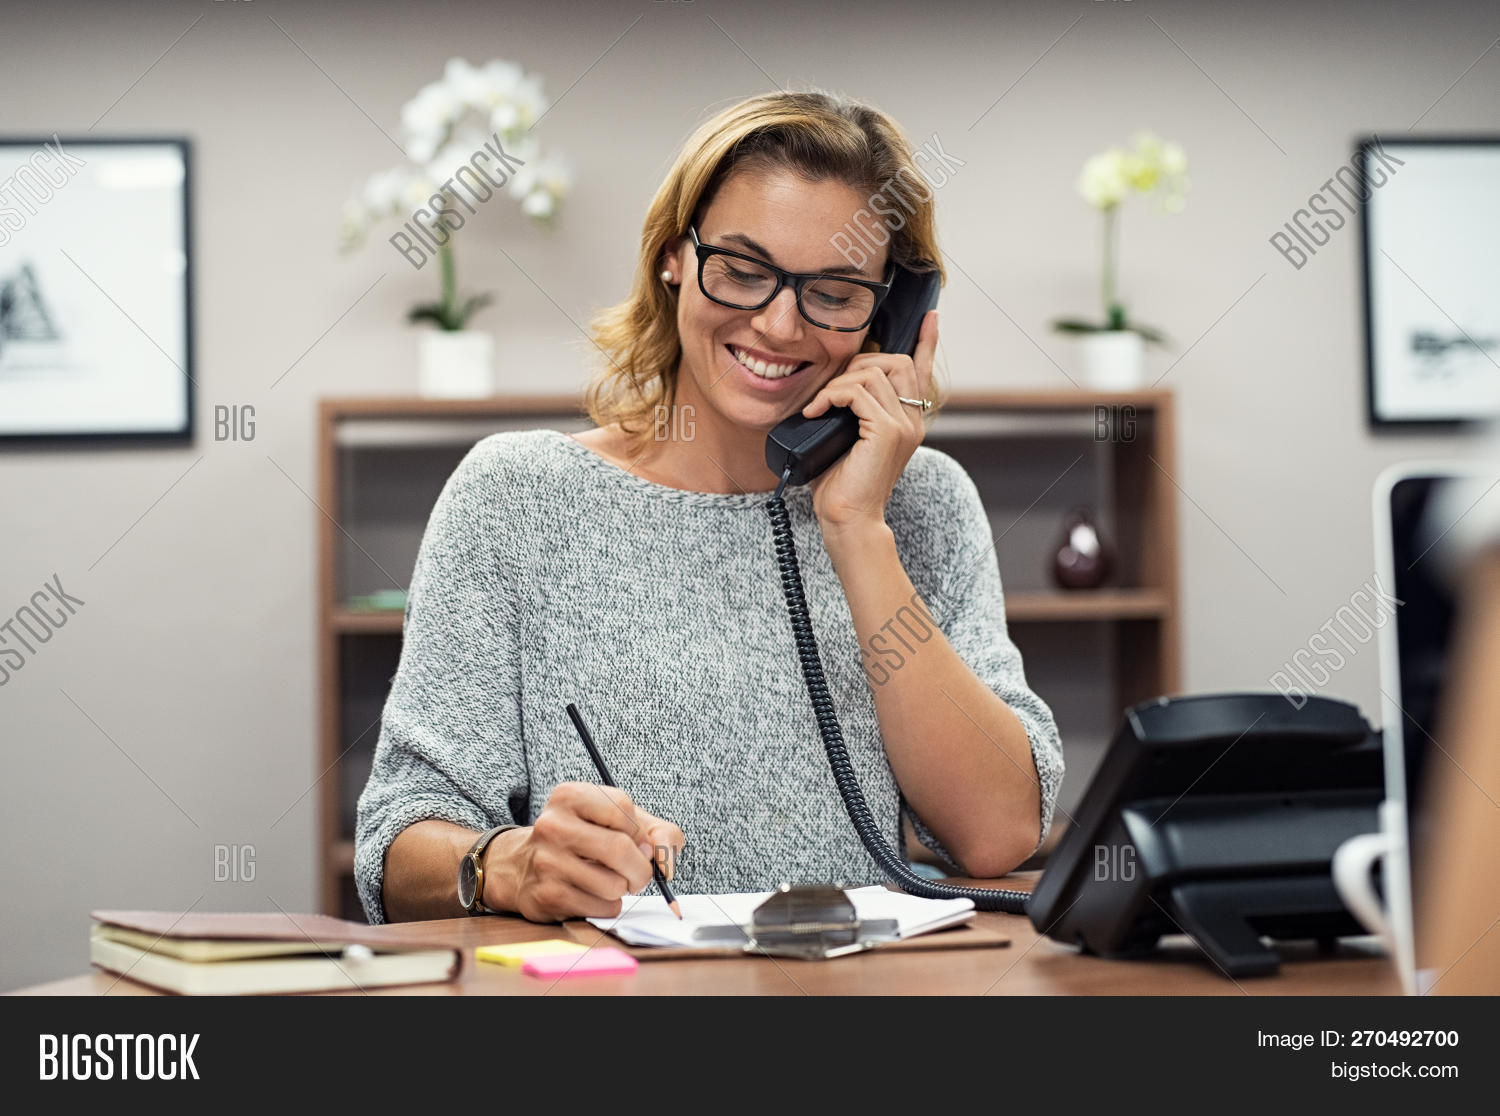 30s,40s,account,accountant,answering,assistance,attractive,beautiful,business,business casual,business woman,businesswoman,call,casual,casual business,center,cheerful,client care,communication,connection,conversation,corporate,desk,happy,holding,interaction,landline,landline phone,listening,mature,mid adult woman,middle aged woman,networking,note,office,people,phone,positive,professional,secretary,smile,taking,taking notes,talk,technology,telephone,woman,work,writing,young